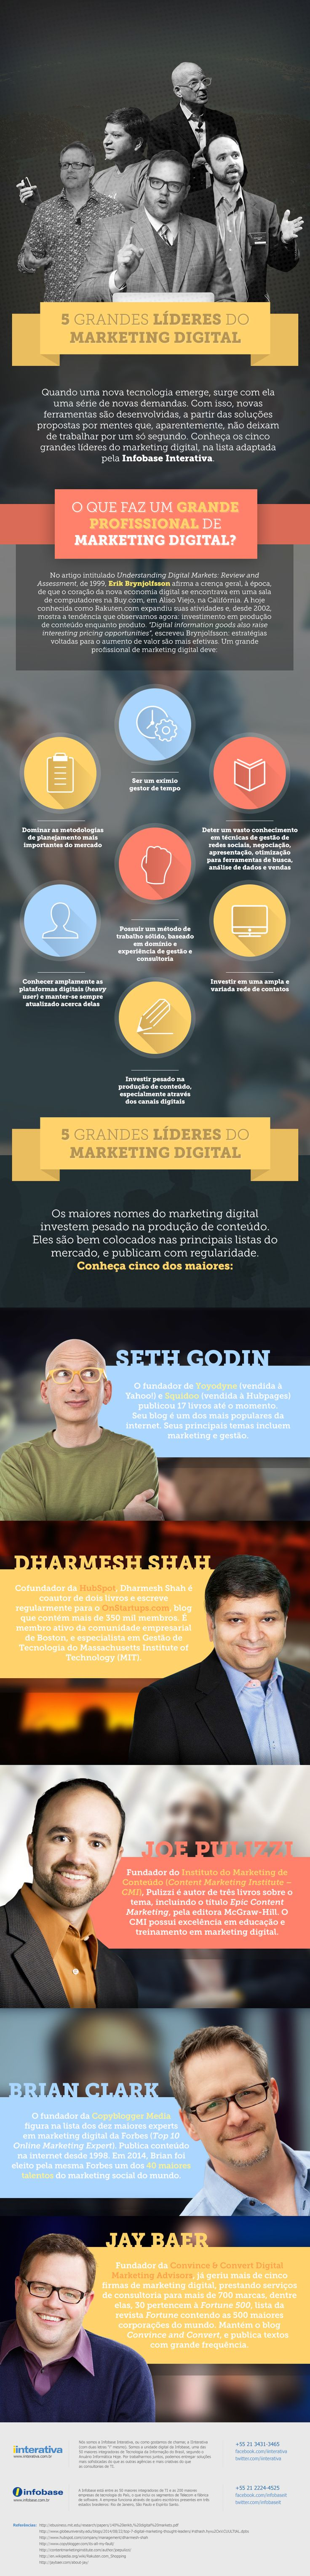 5 Grandes Líderes do Marketing Digital